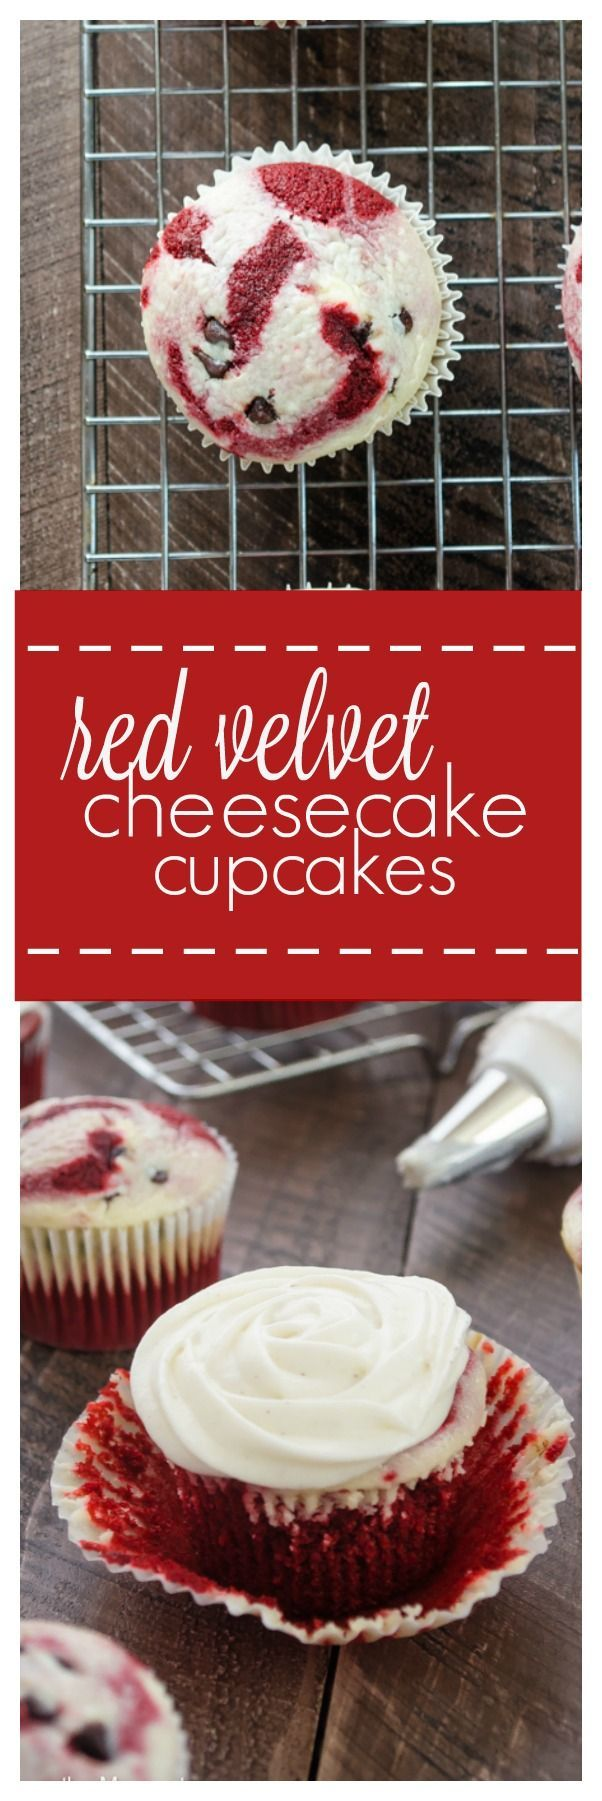 Red Velvet Cheesecake Cupcakes are moist and light red velvet cupcakes baked with a chocolate chip cheesecake filling and topped with tangy cream cheese frosting! /FlavortheMoment/